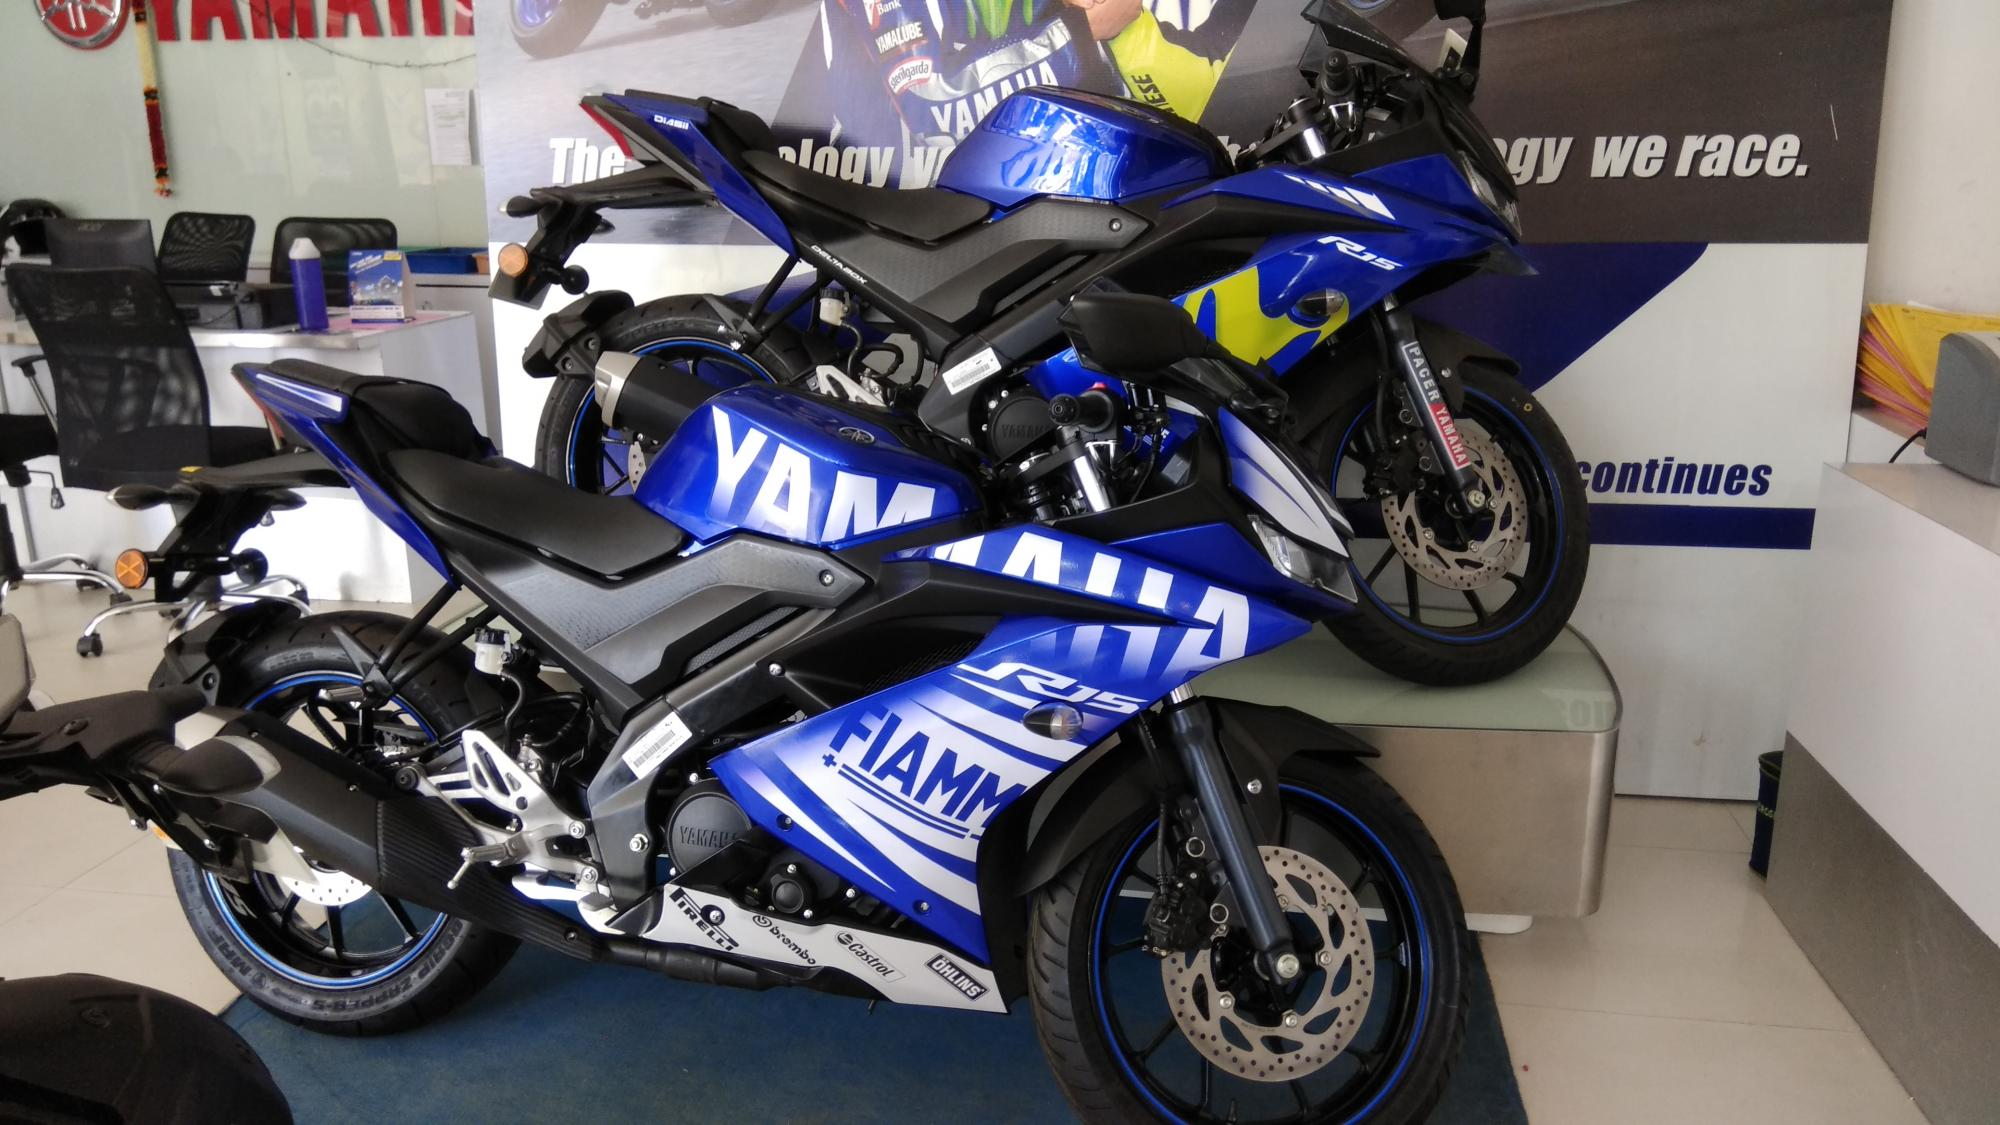 Customised Yamaha R15 V3 0 with graphics kit - 8 Live images